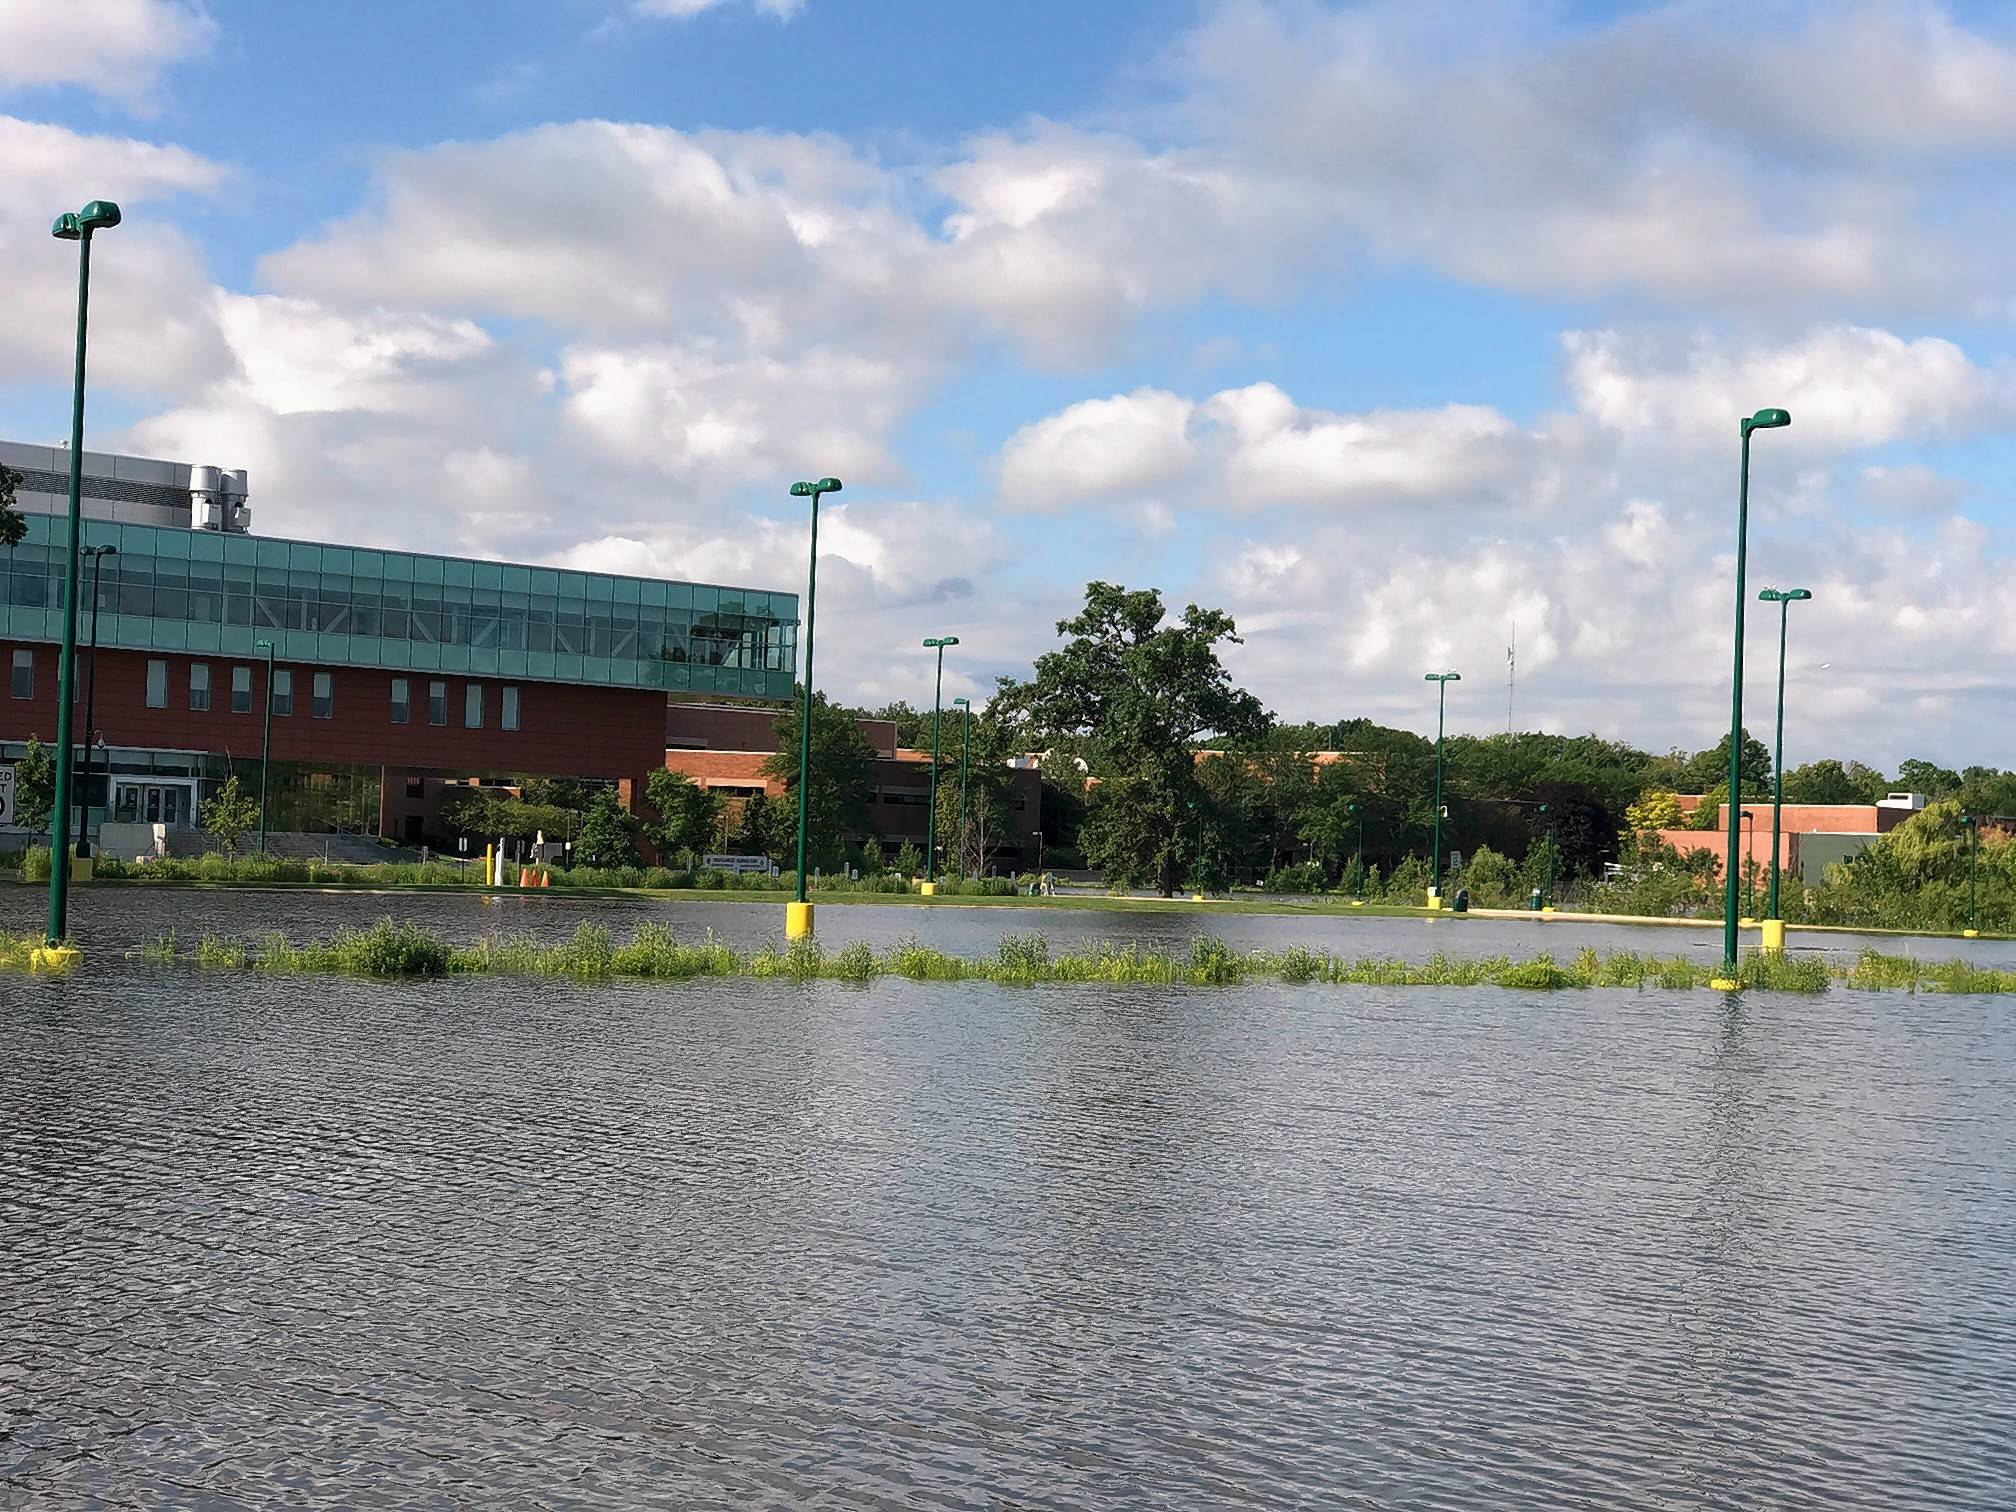 Although campus buildings remain dry, Oakton Community College will keep its Des Plaines campus closed for another day Monday because of flooded parking lots and nearby road closures.